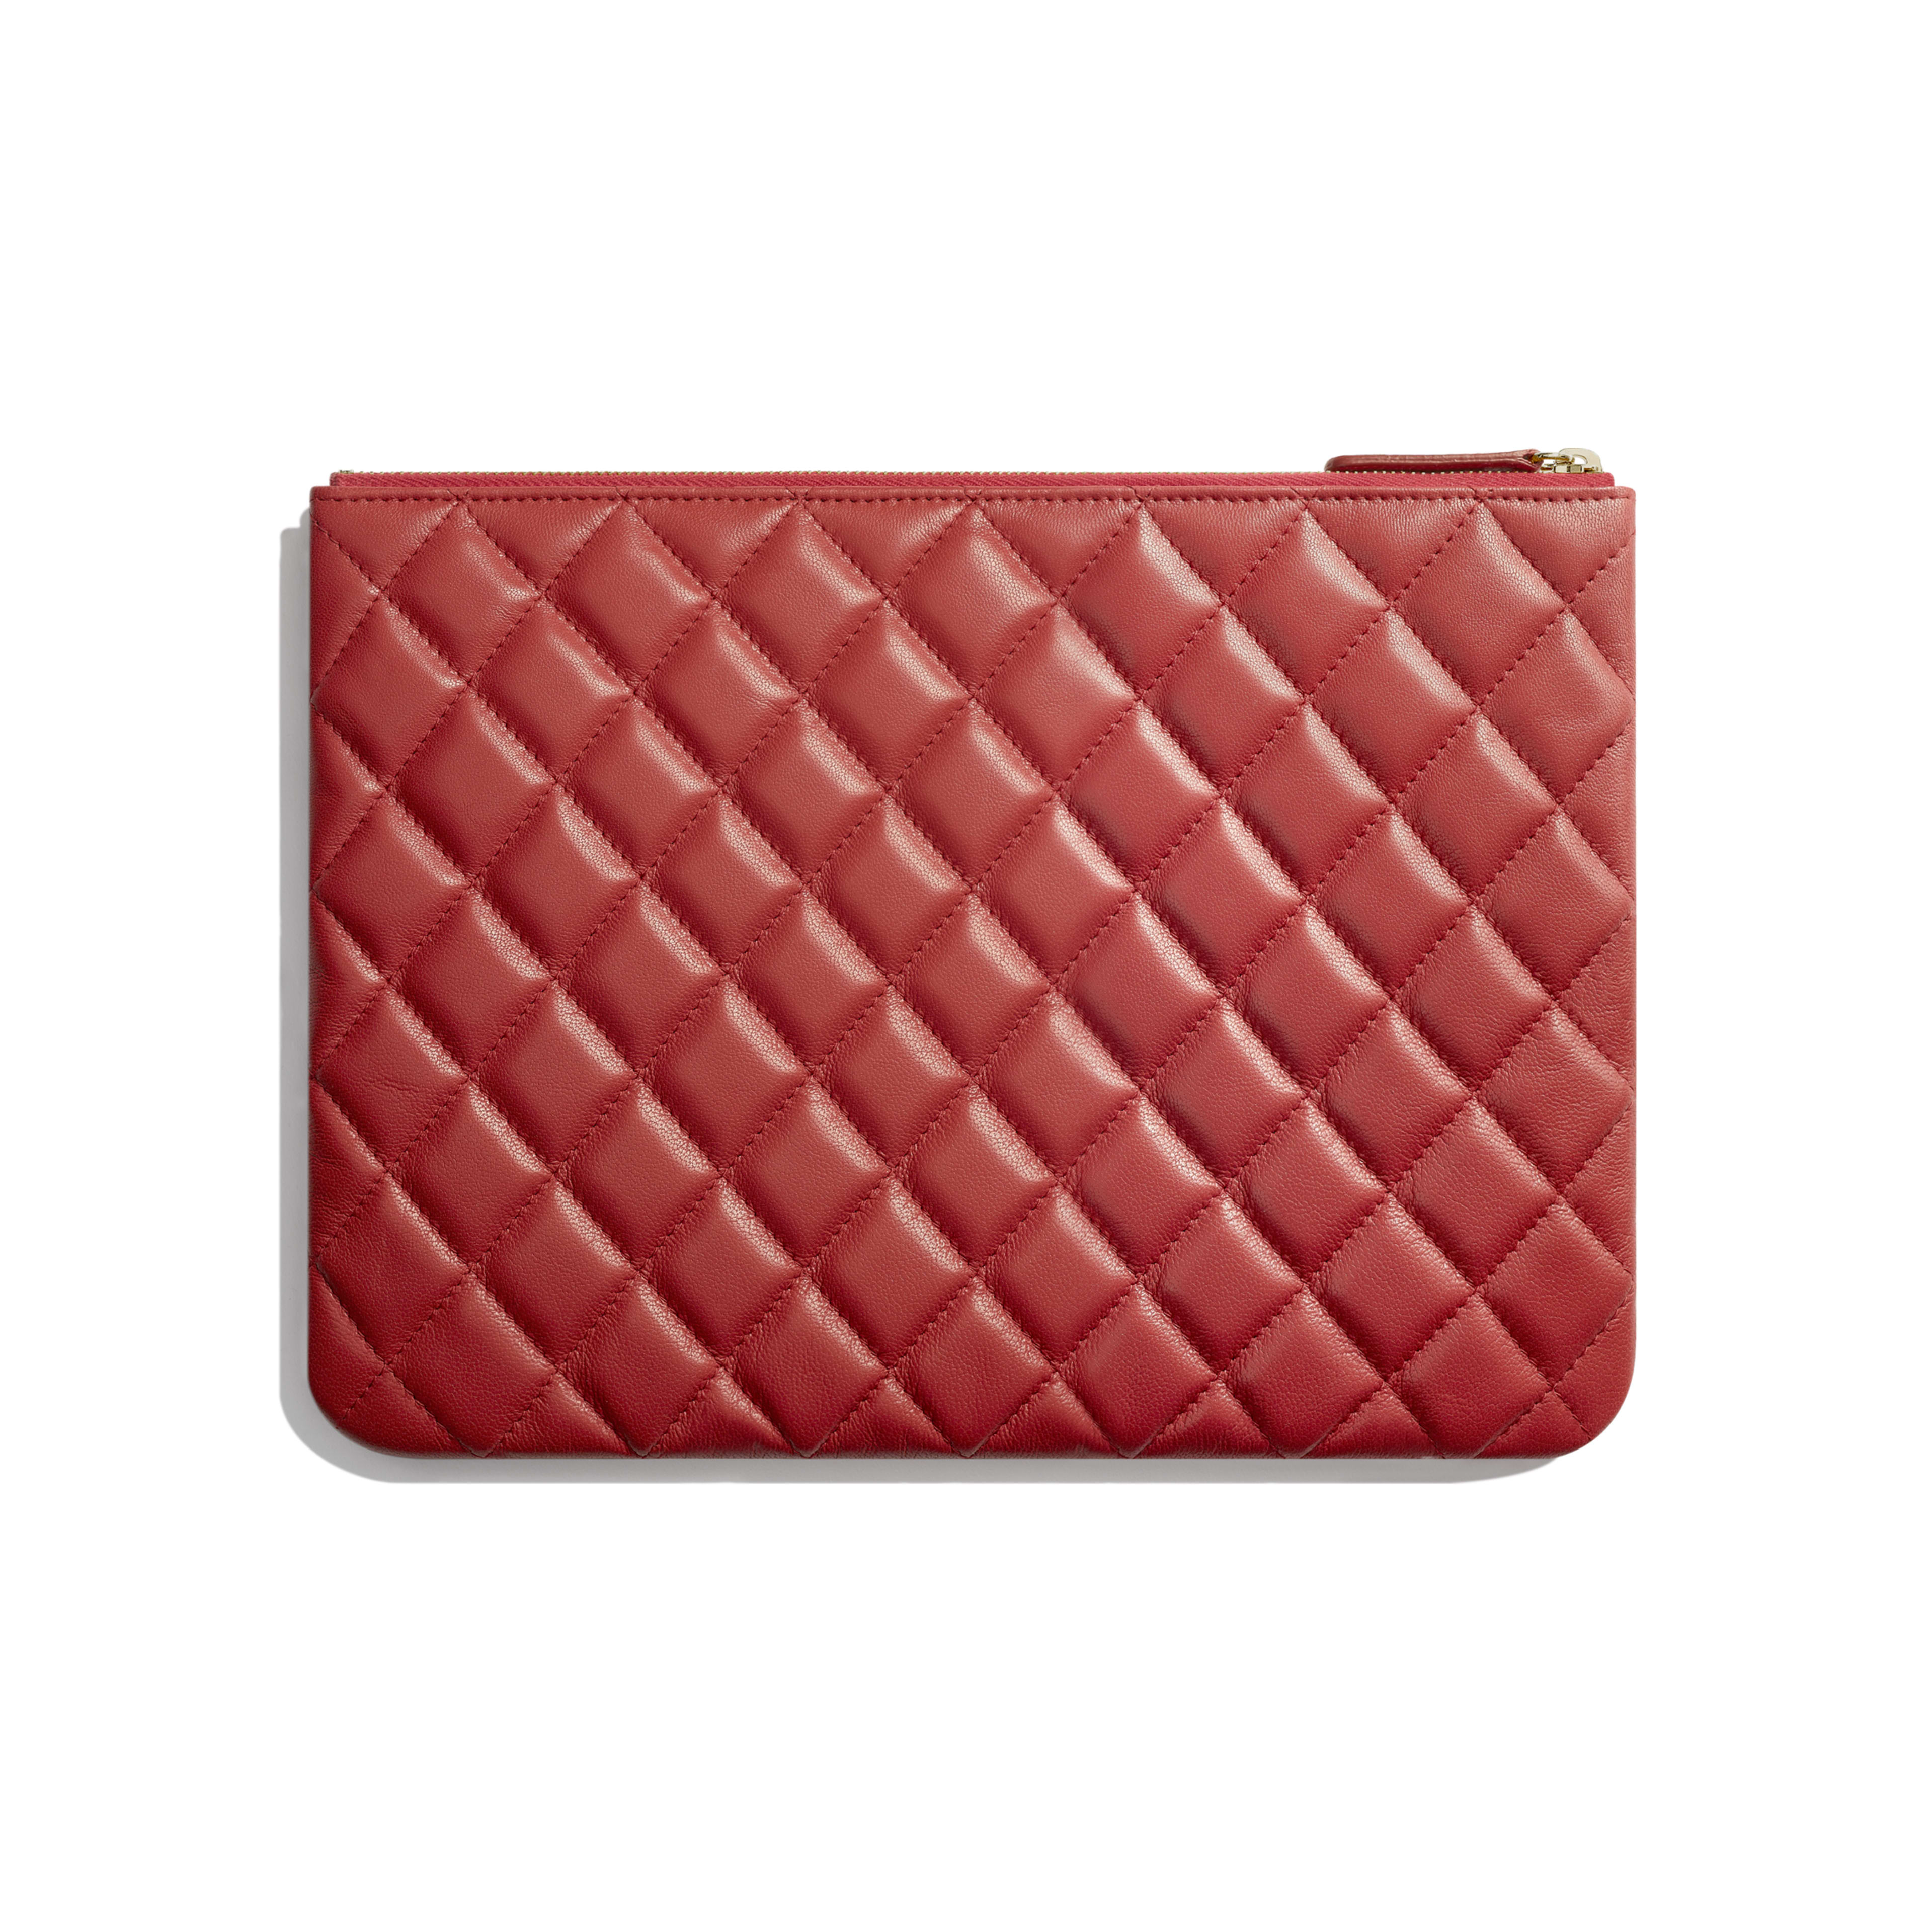 Pouch - Red - Lambskin & Gold-Tone Metal - Alternative view - see full sized version